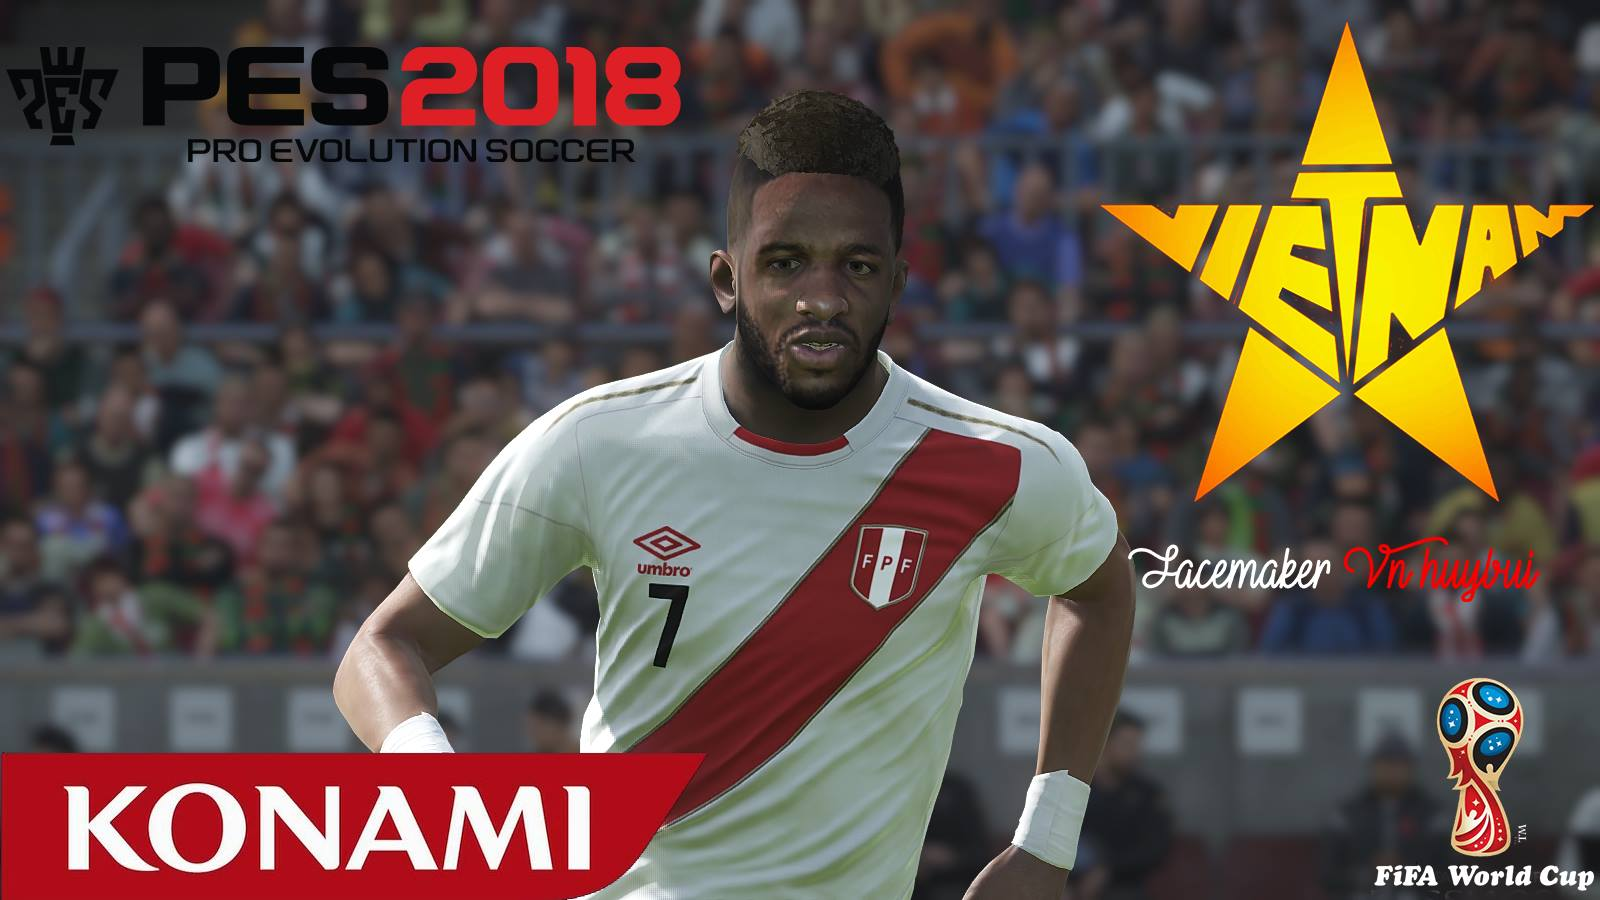 PES 2018 Jefferson Farfán face by Facemaker VN HUY BUI